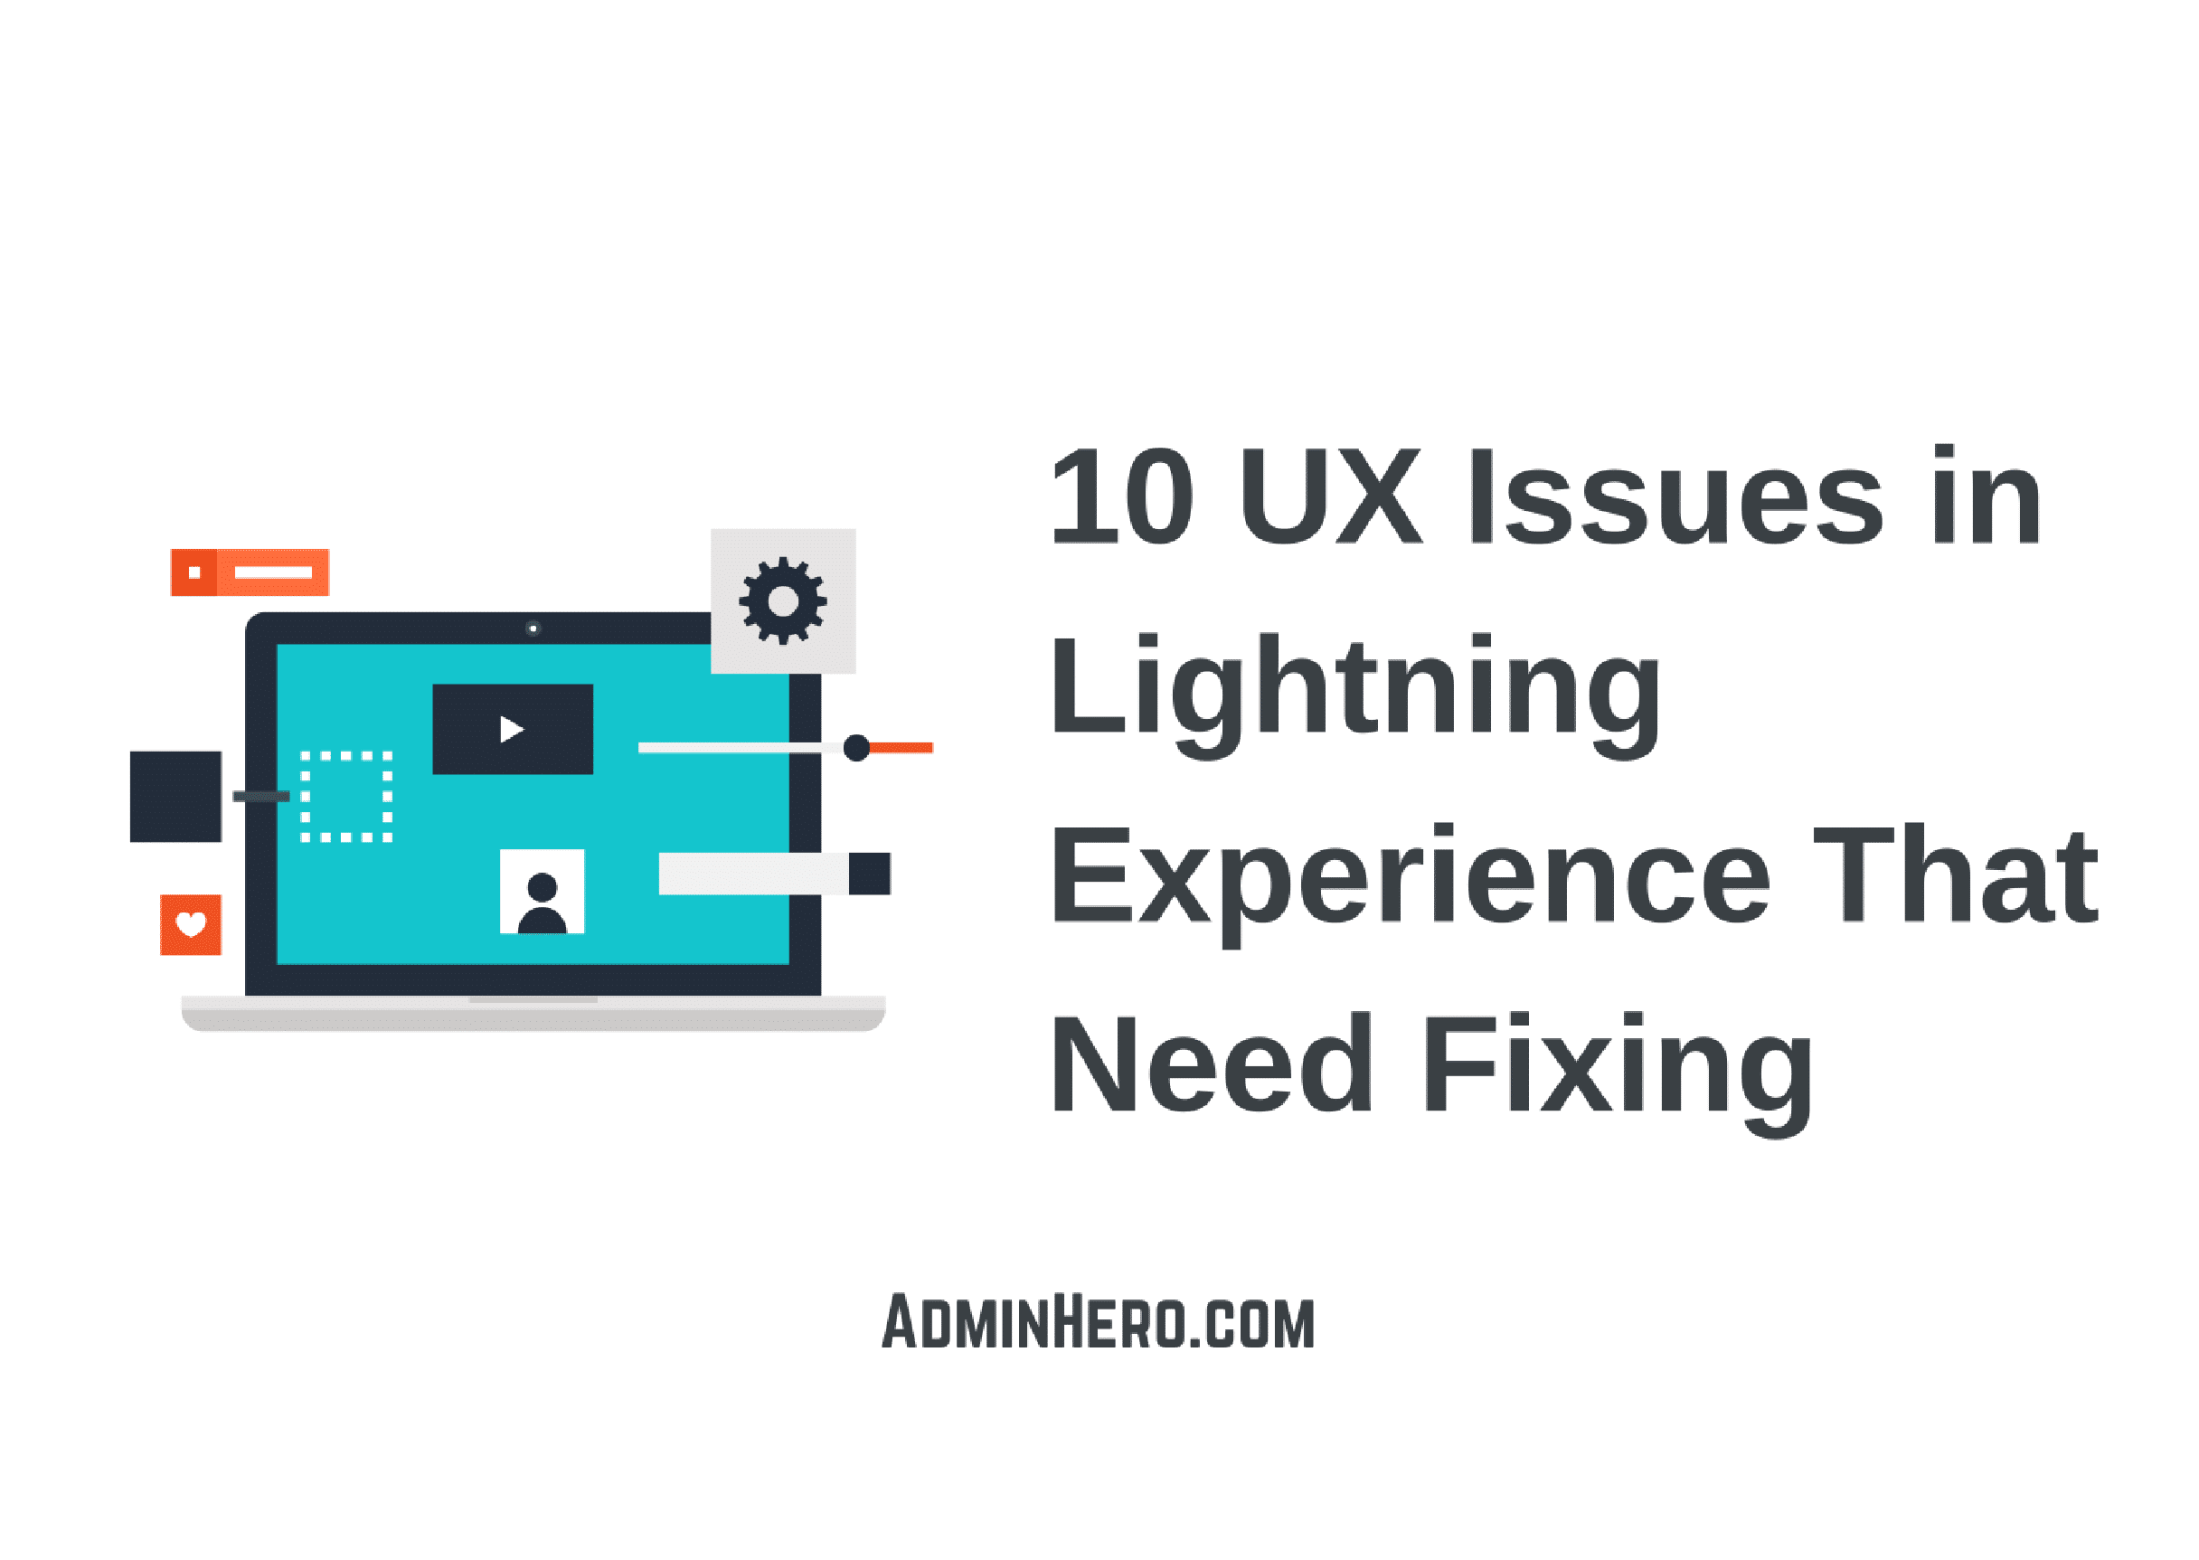 10 UX Issues in Lightning Experience That Need Fixing (1)